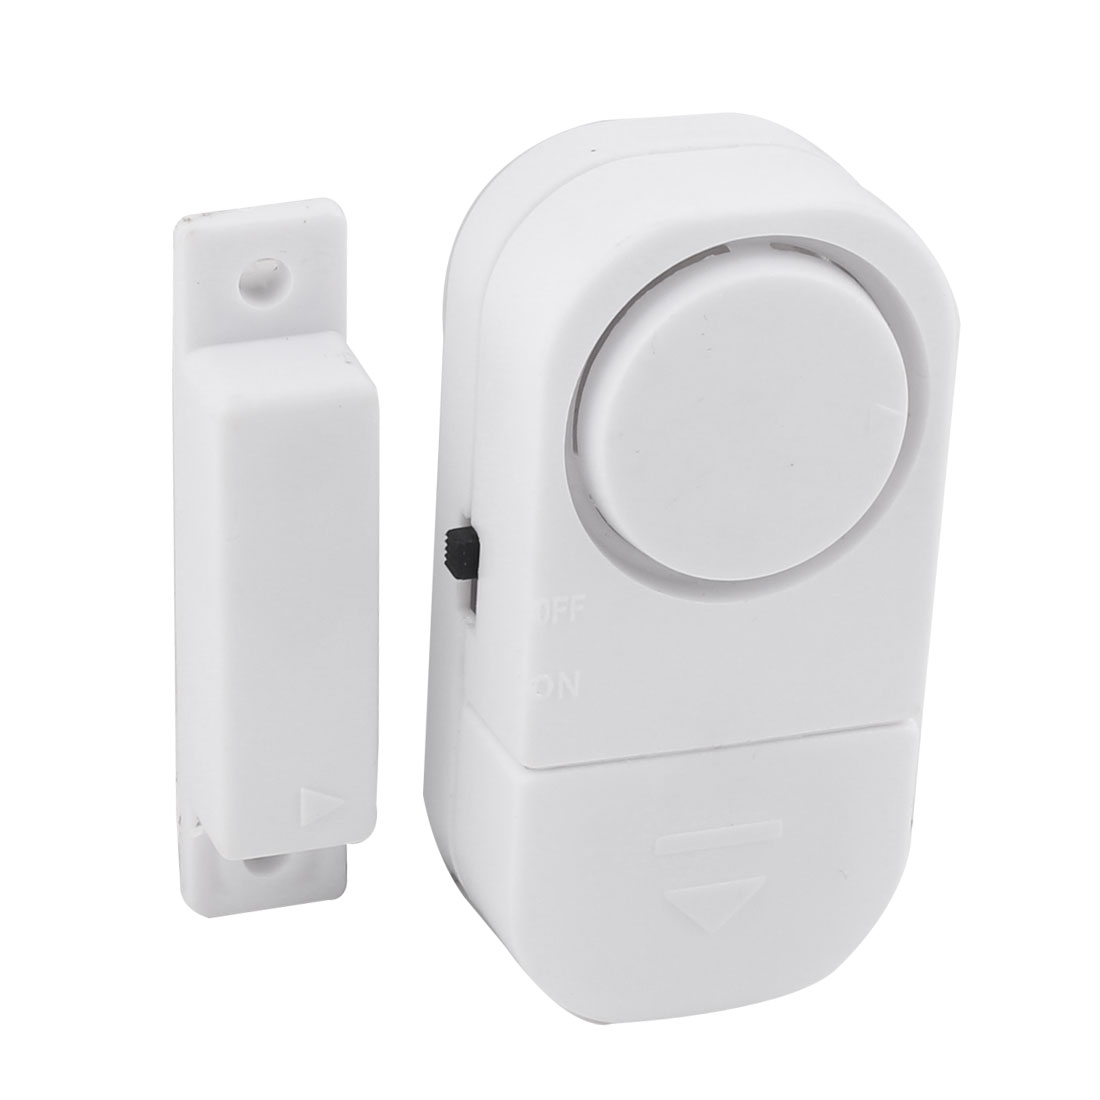 Home Window Door Entry Anti-Theft DIY Safety Magnetic Sensor Wireless Alarm System